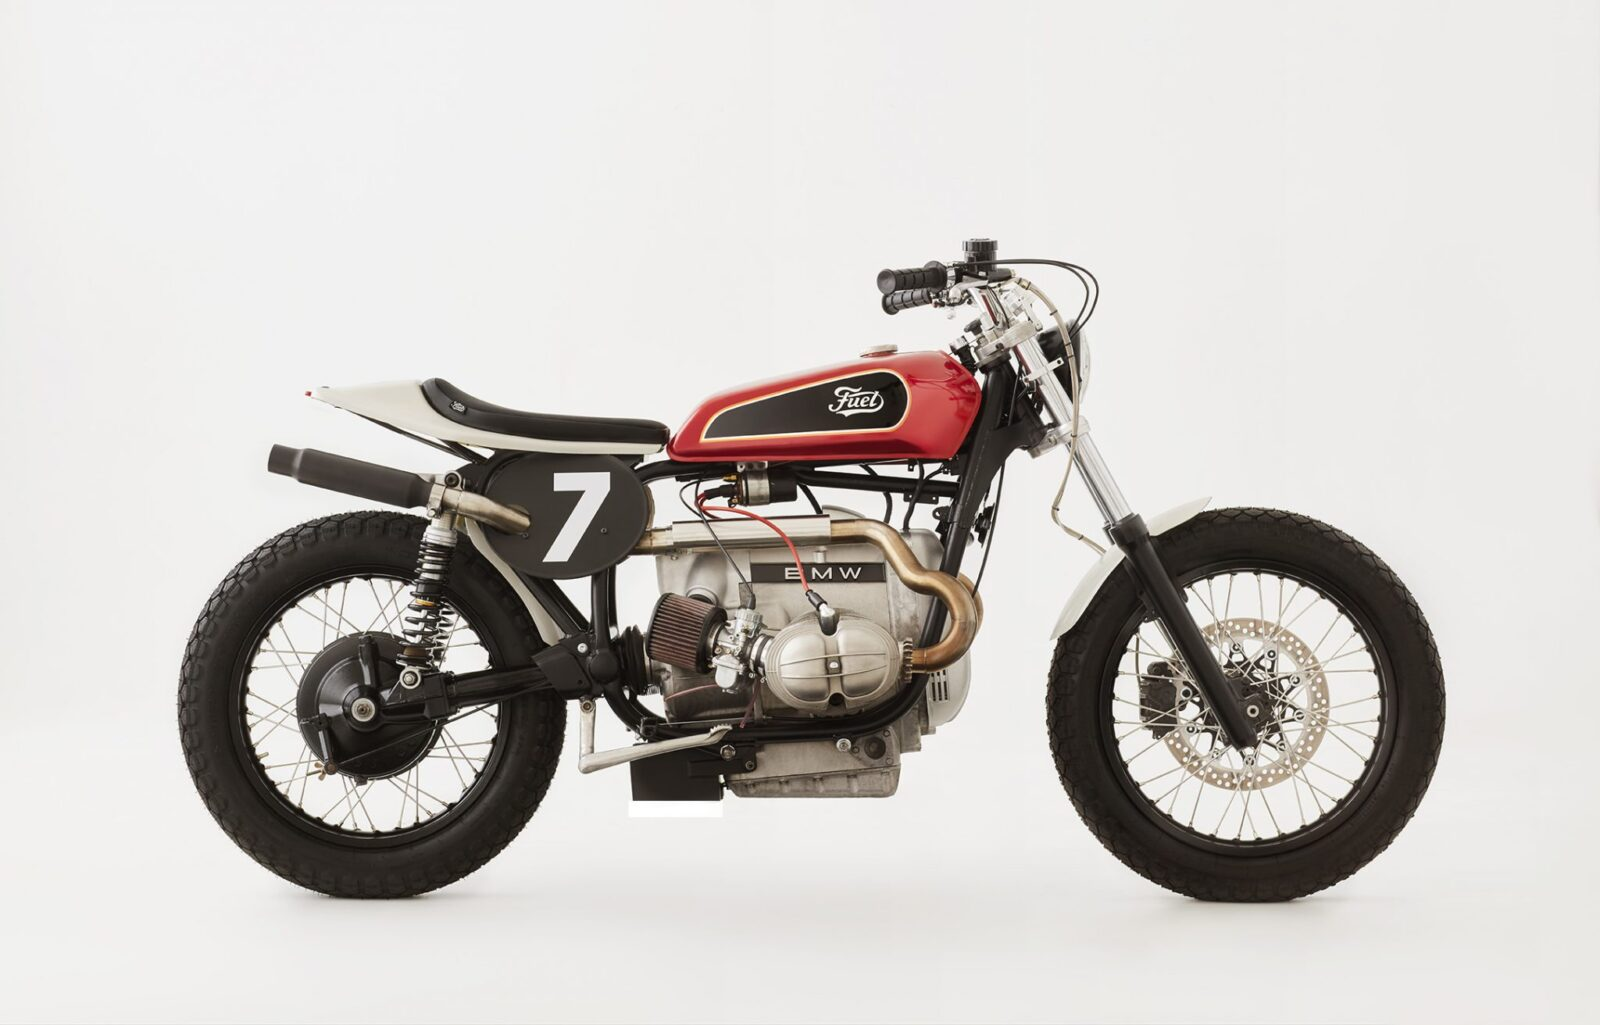 BMW R100 RS 1600x1025 - Fuel Motorcycles BMW R100 RS Tracker